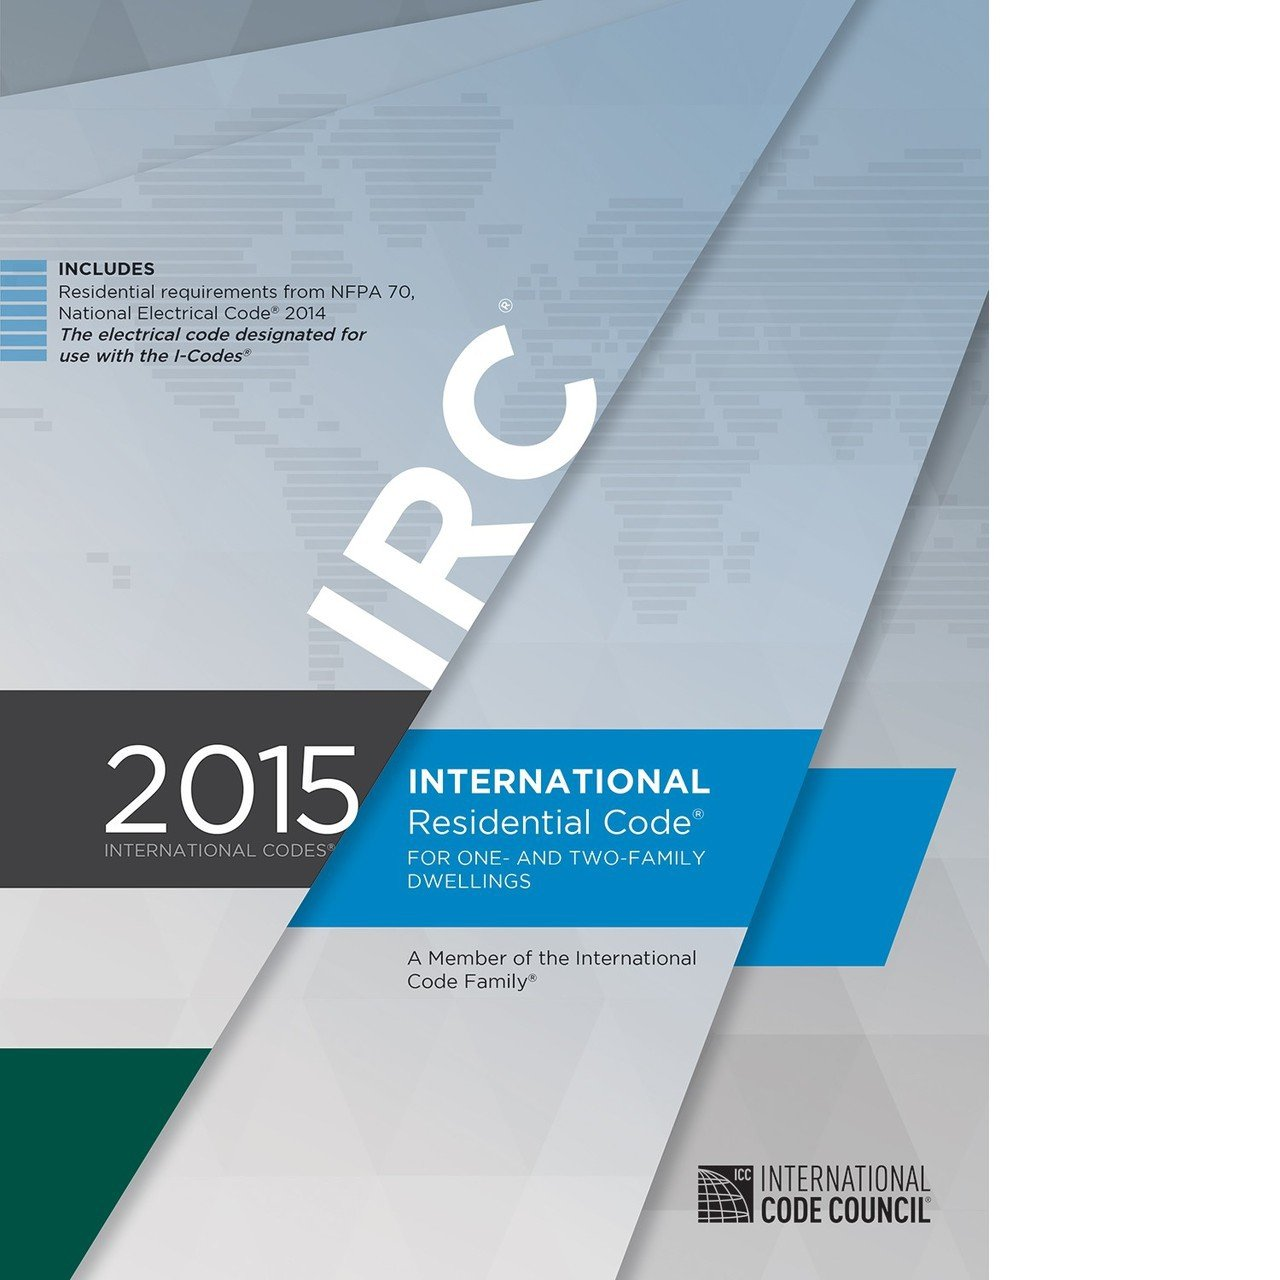 2015 International Residential Code for One- and Two-Family Dwellings pdf